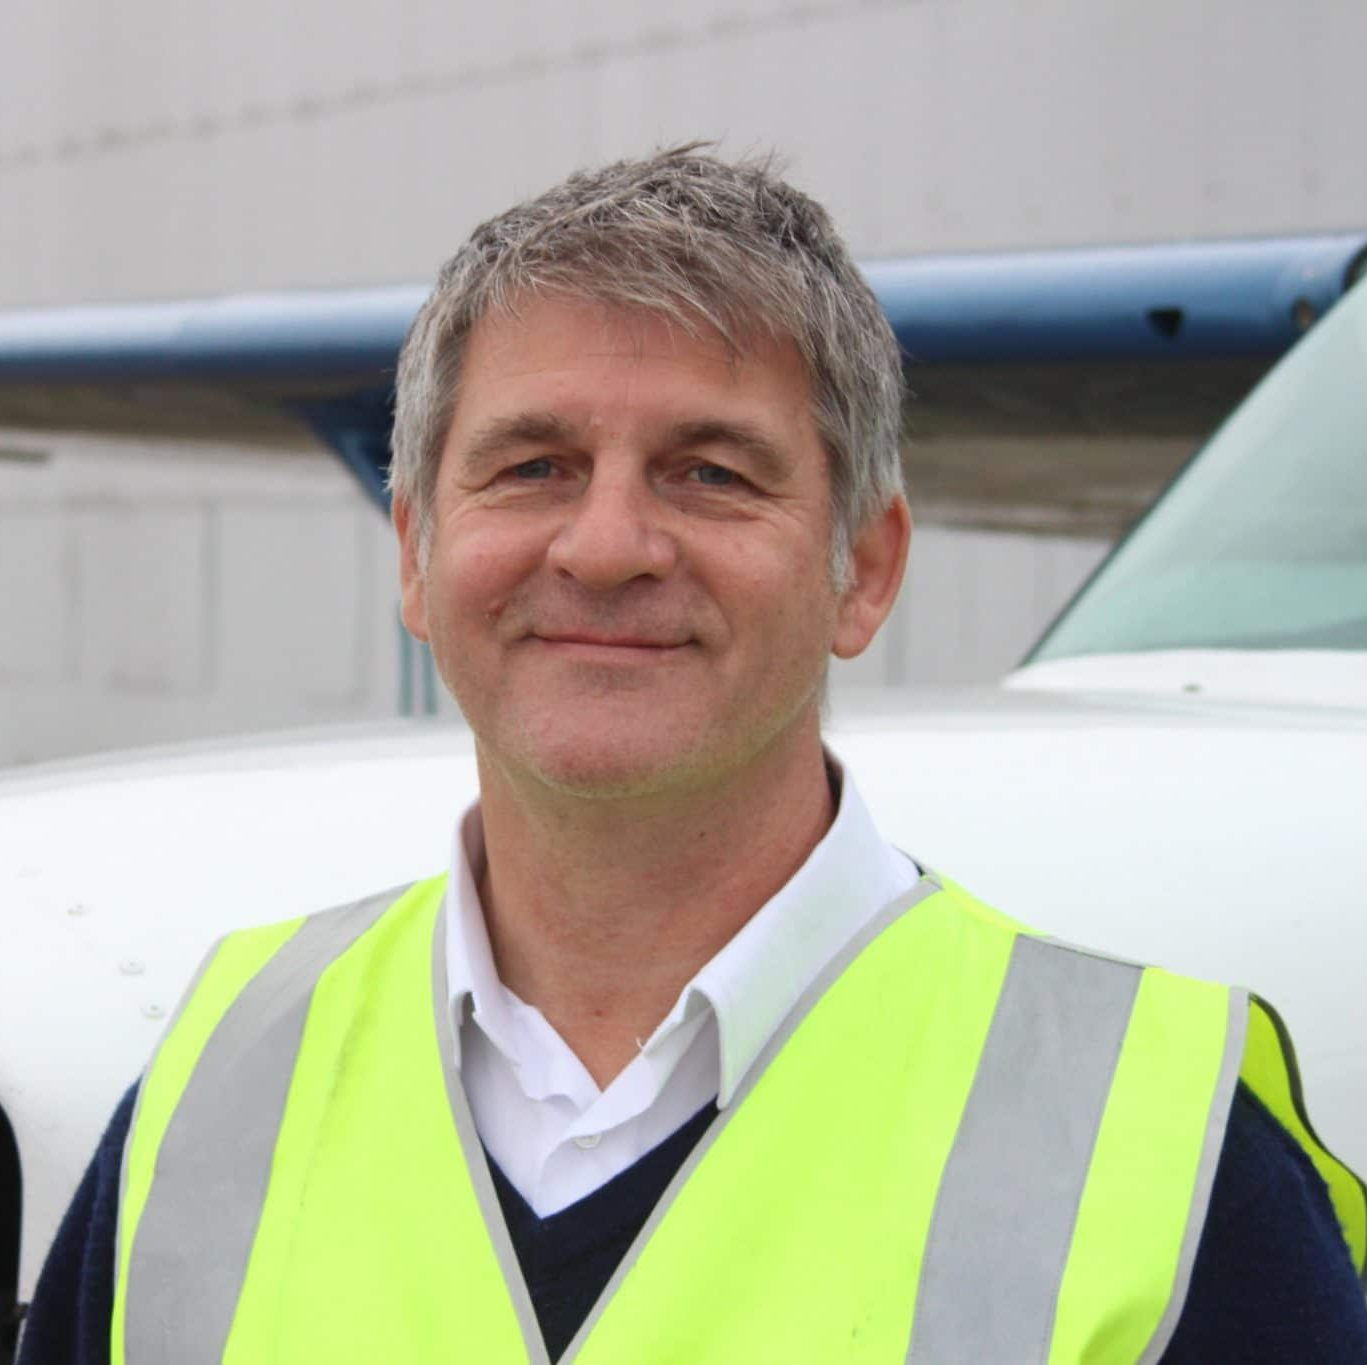 Profile picture of Phil Marshall Lee flight instructor and examiner